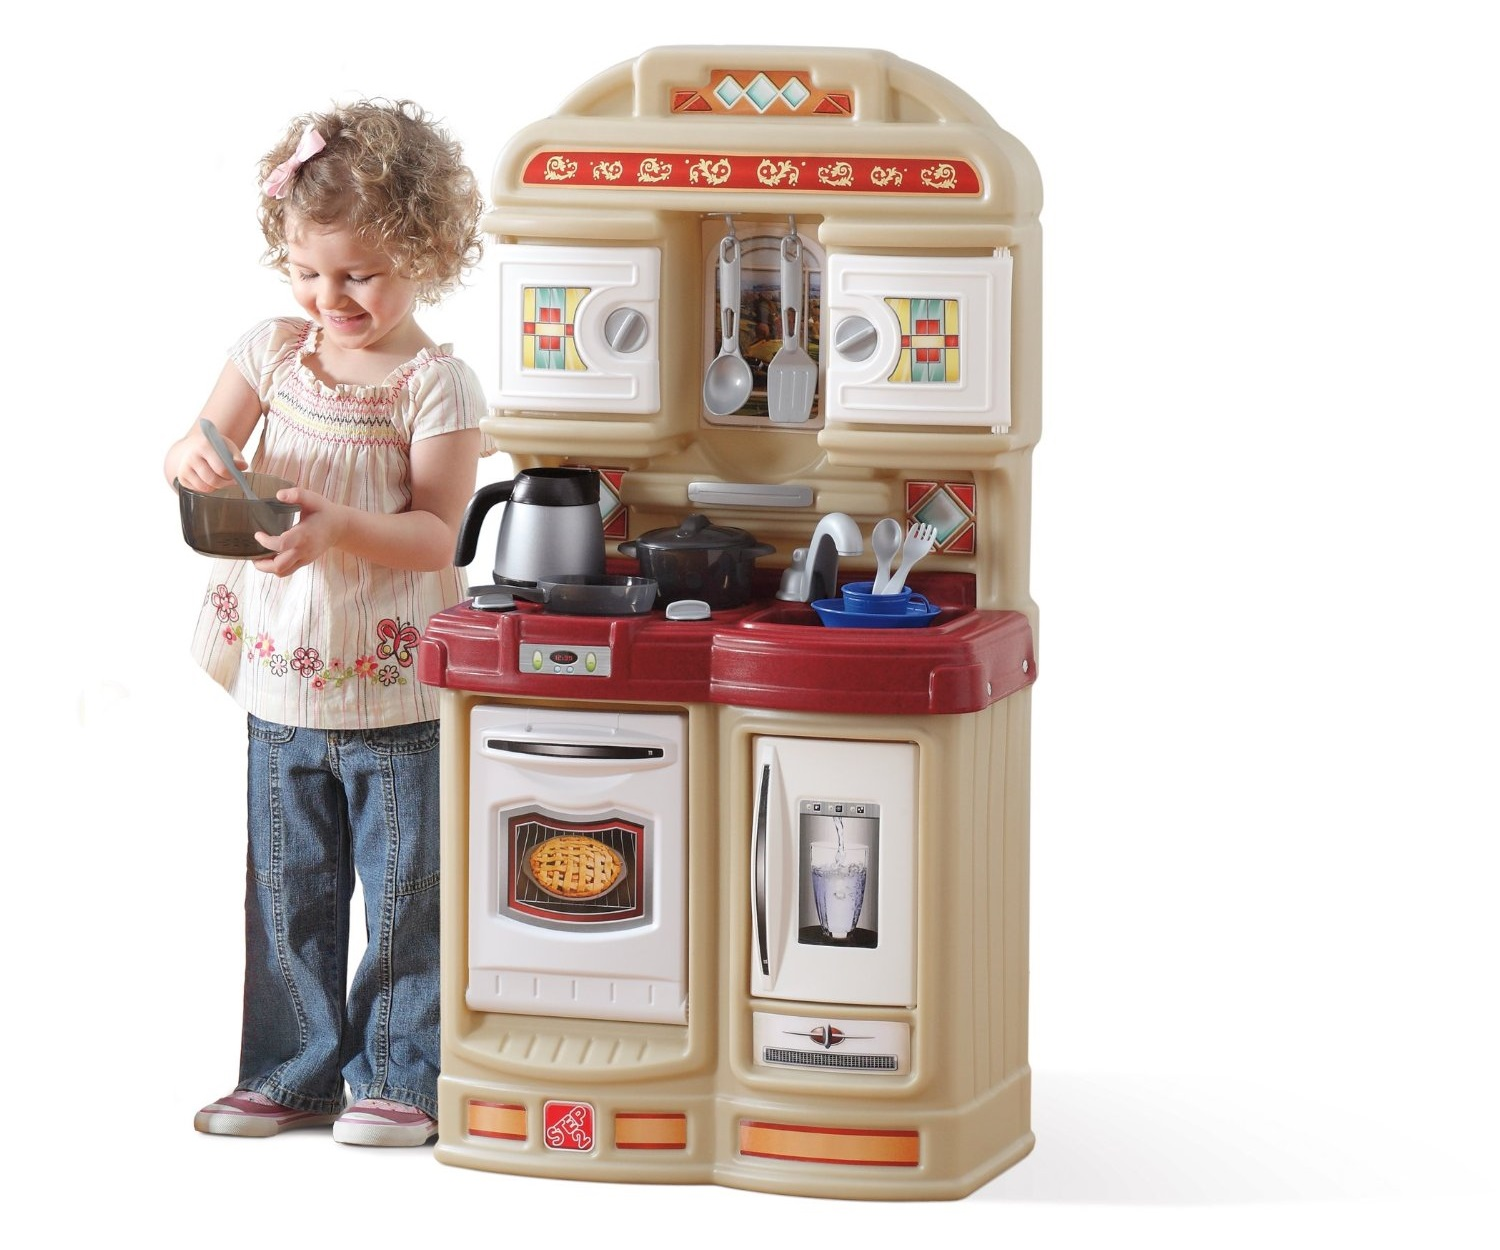 Little Tikes Cupcake Kitchen: Step 2 Cozy Kitchen Review : Great For The Price?